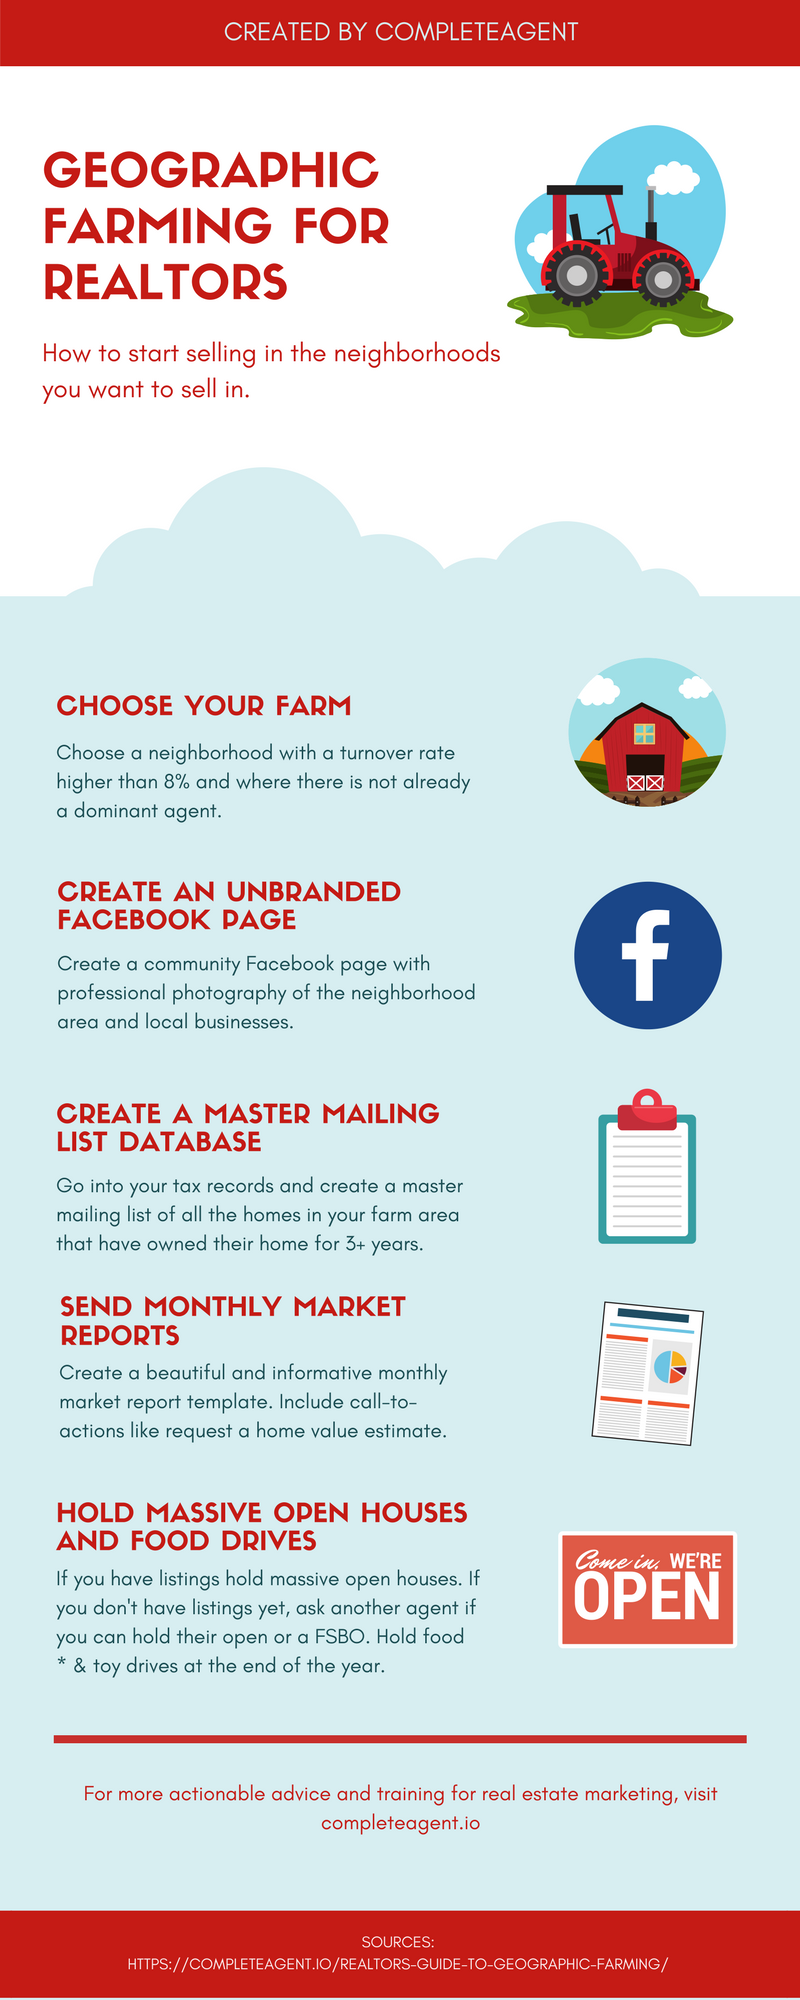 The Realtor's Guide to Geographic Farming Infographic